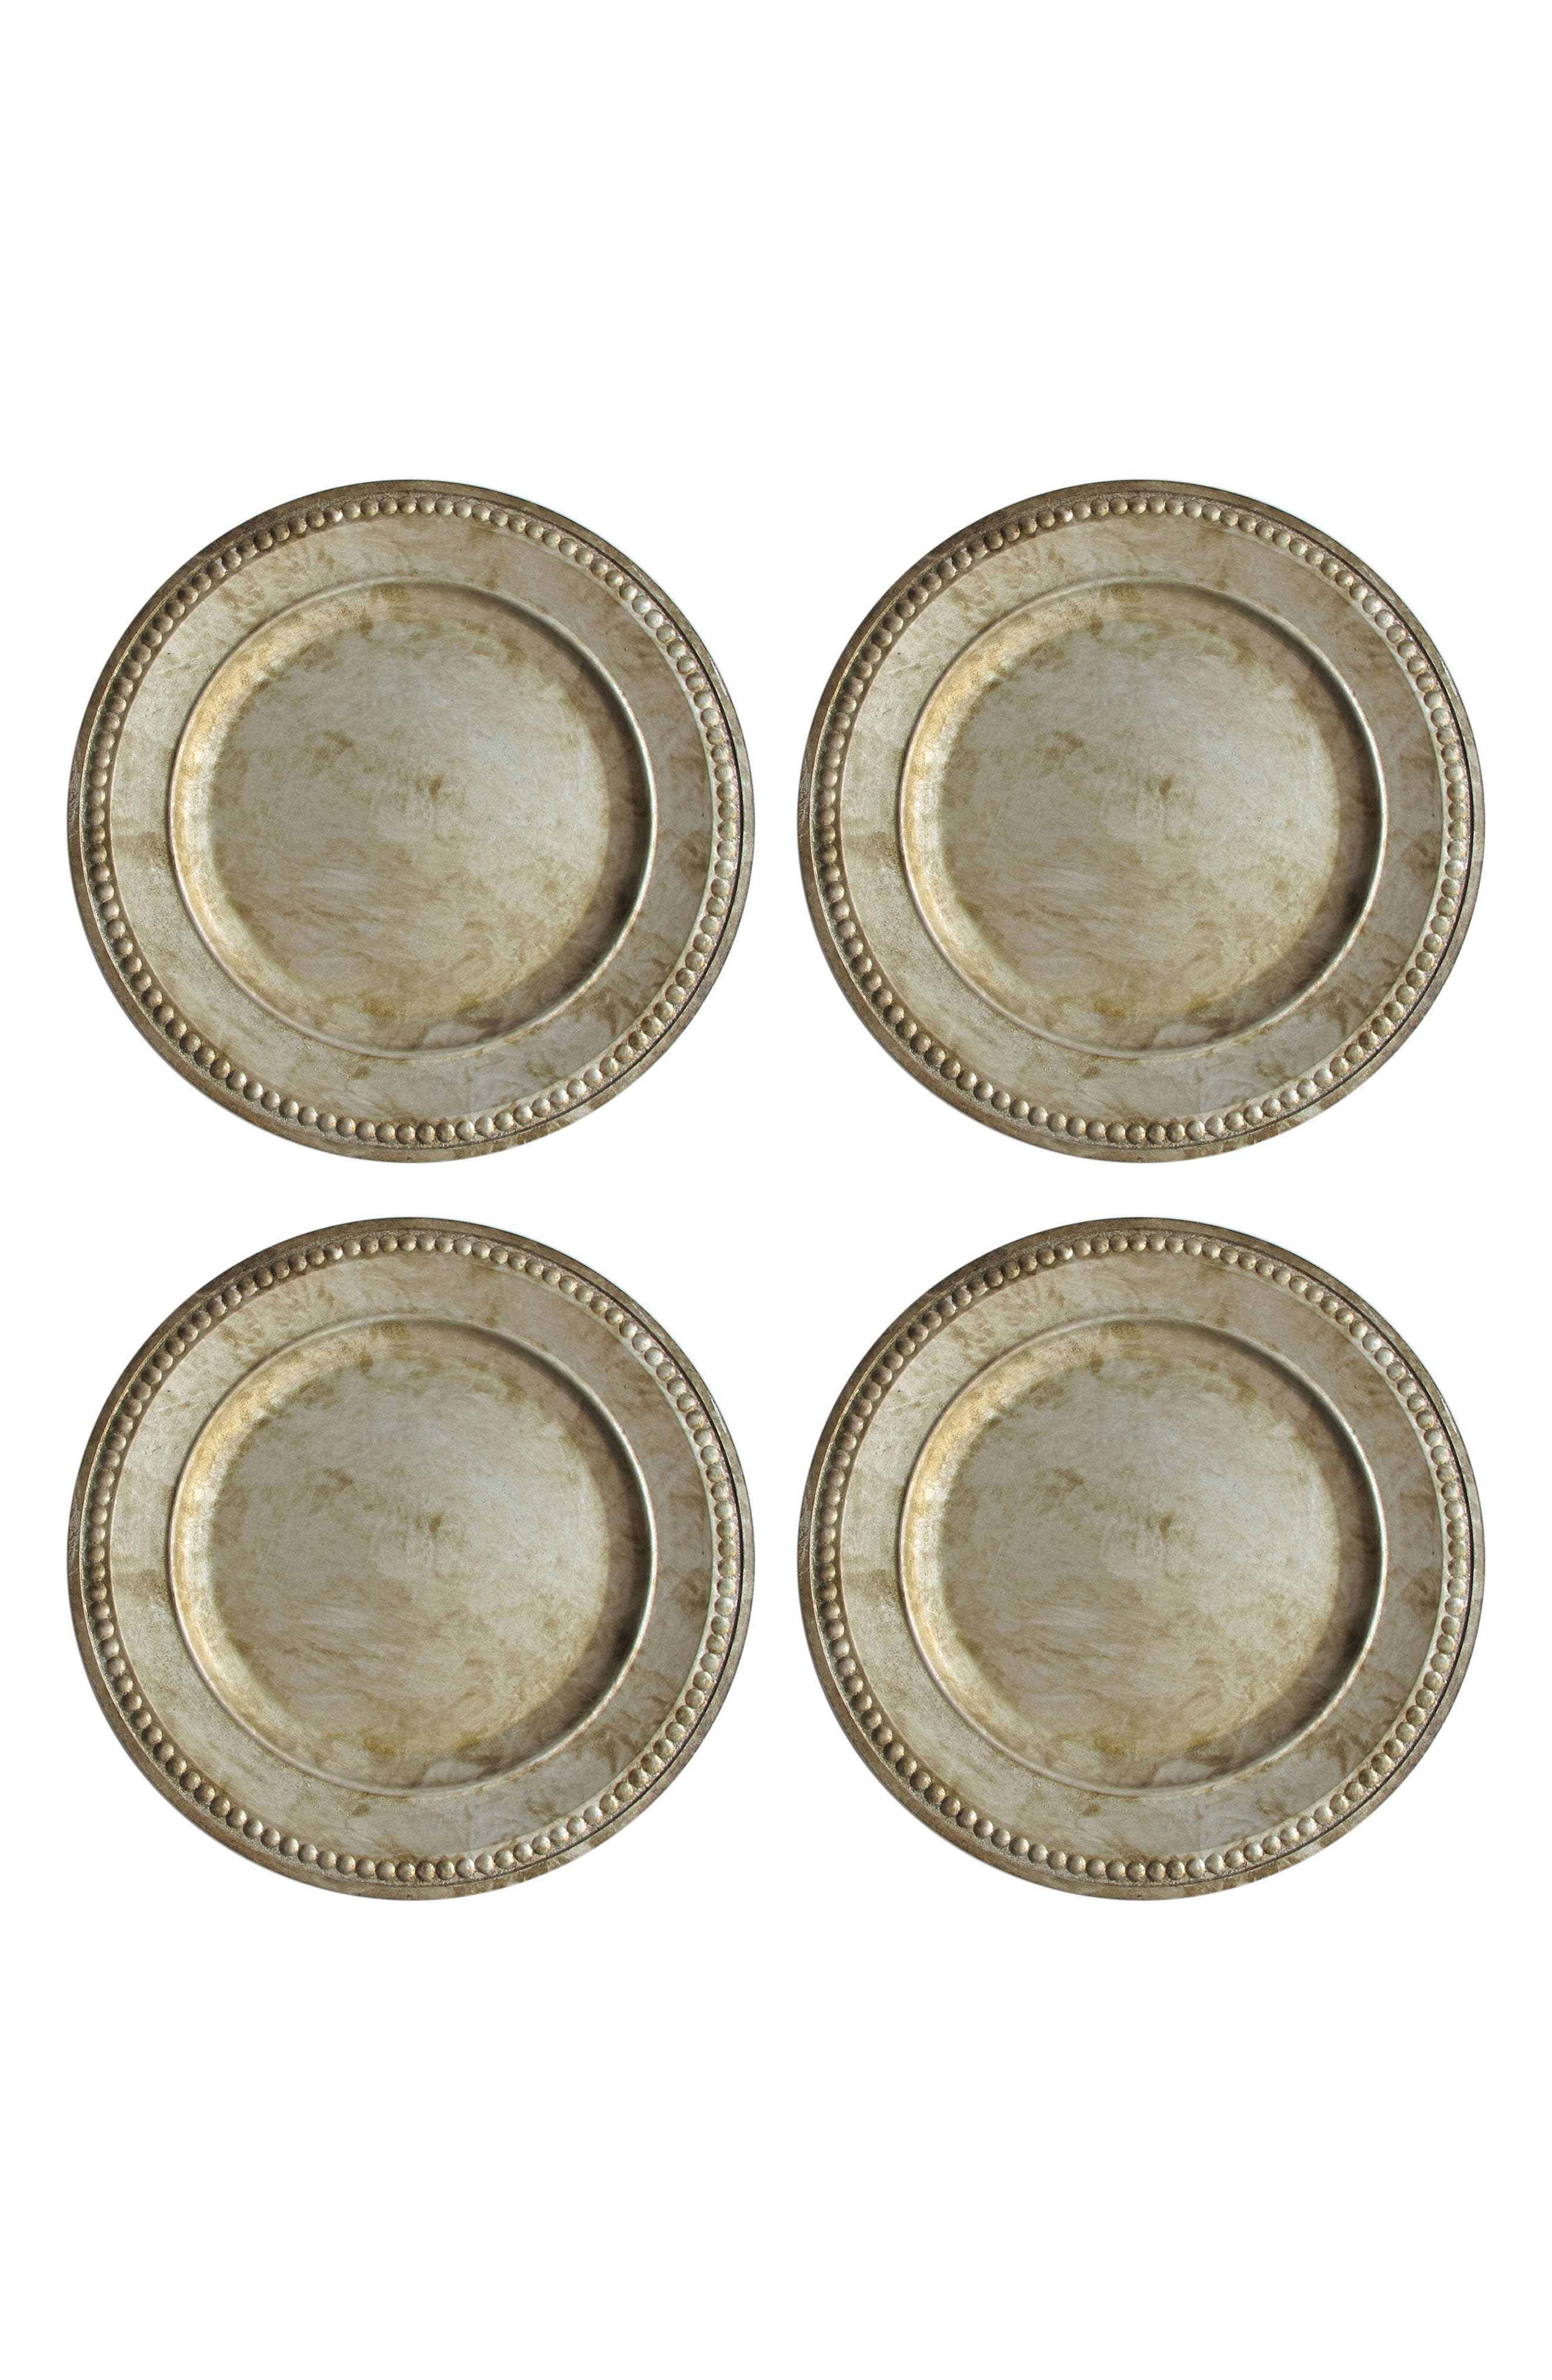 Set of 4 Beaded Antique Charger Plates,                             Main thumbnail 1, color,                             040